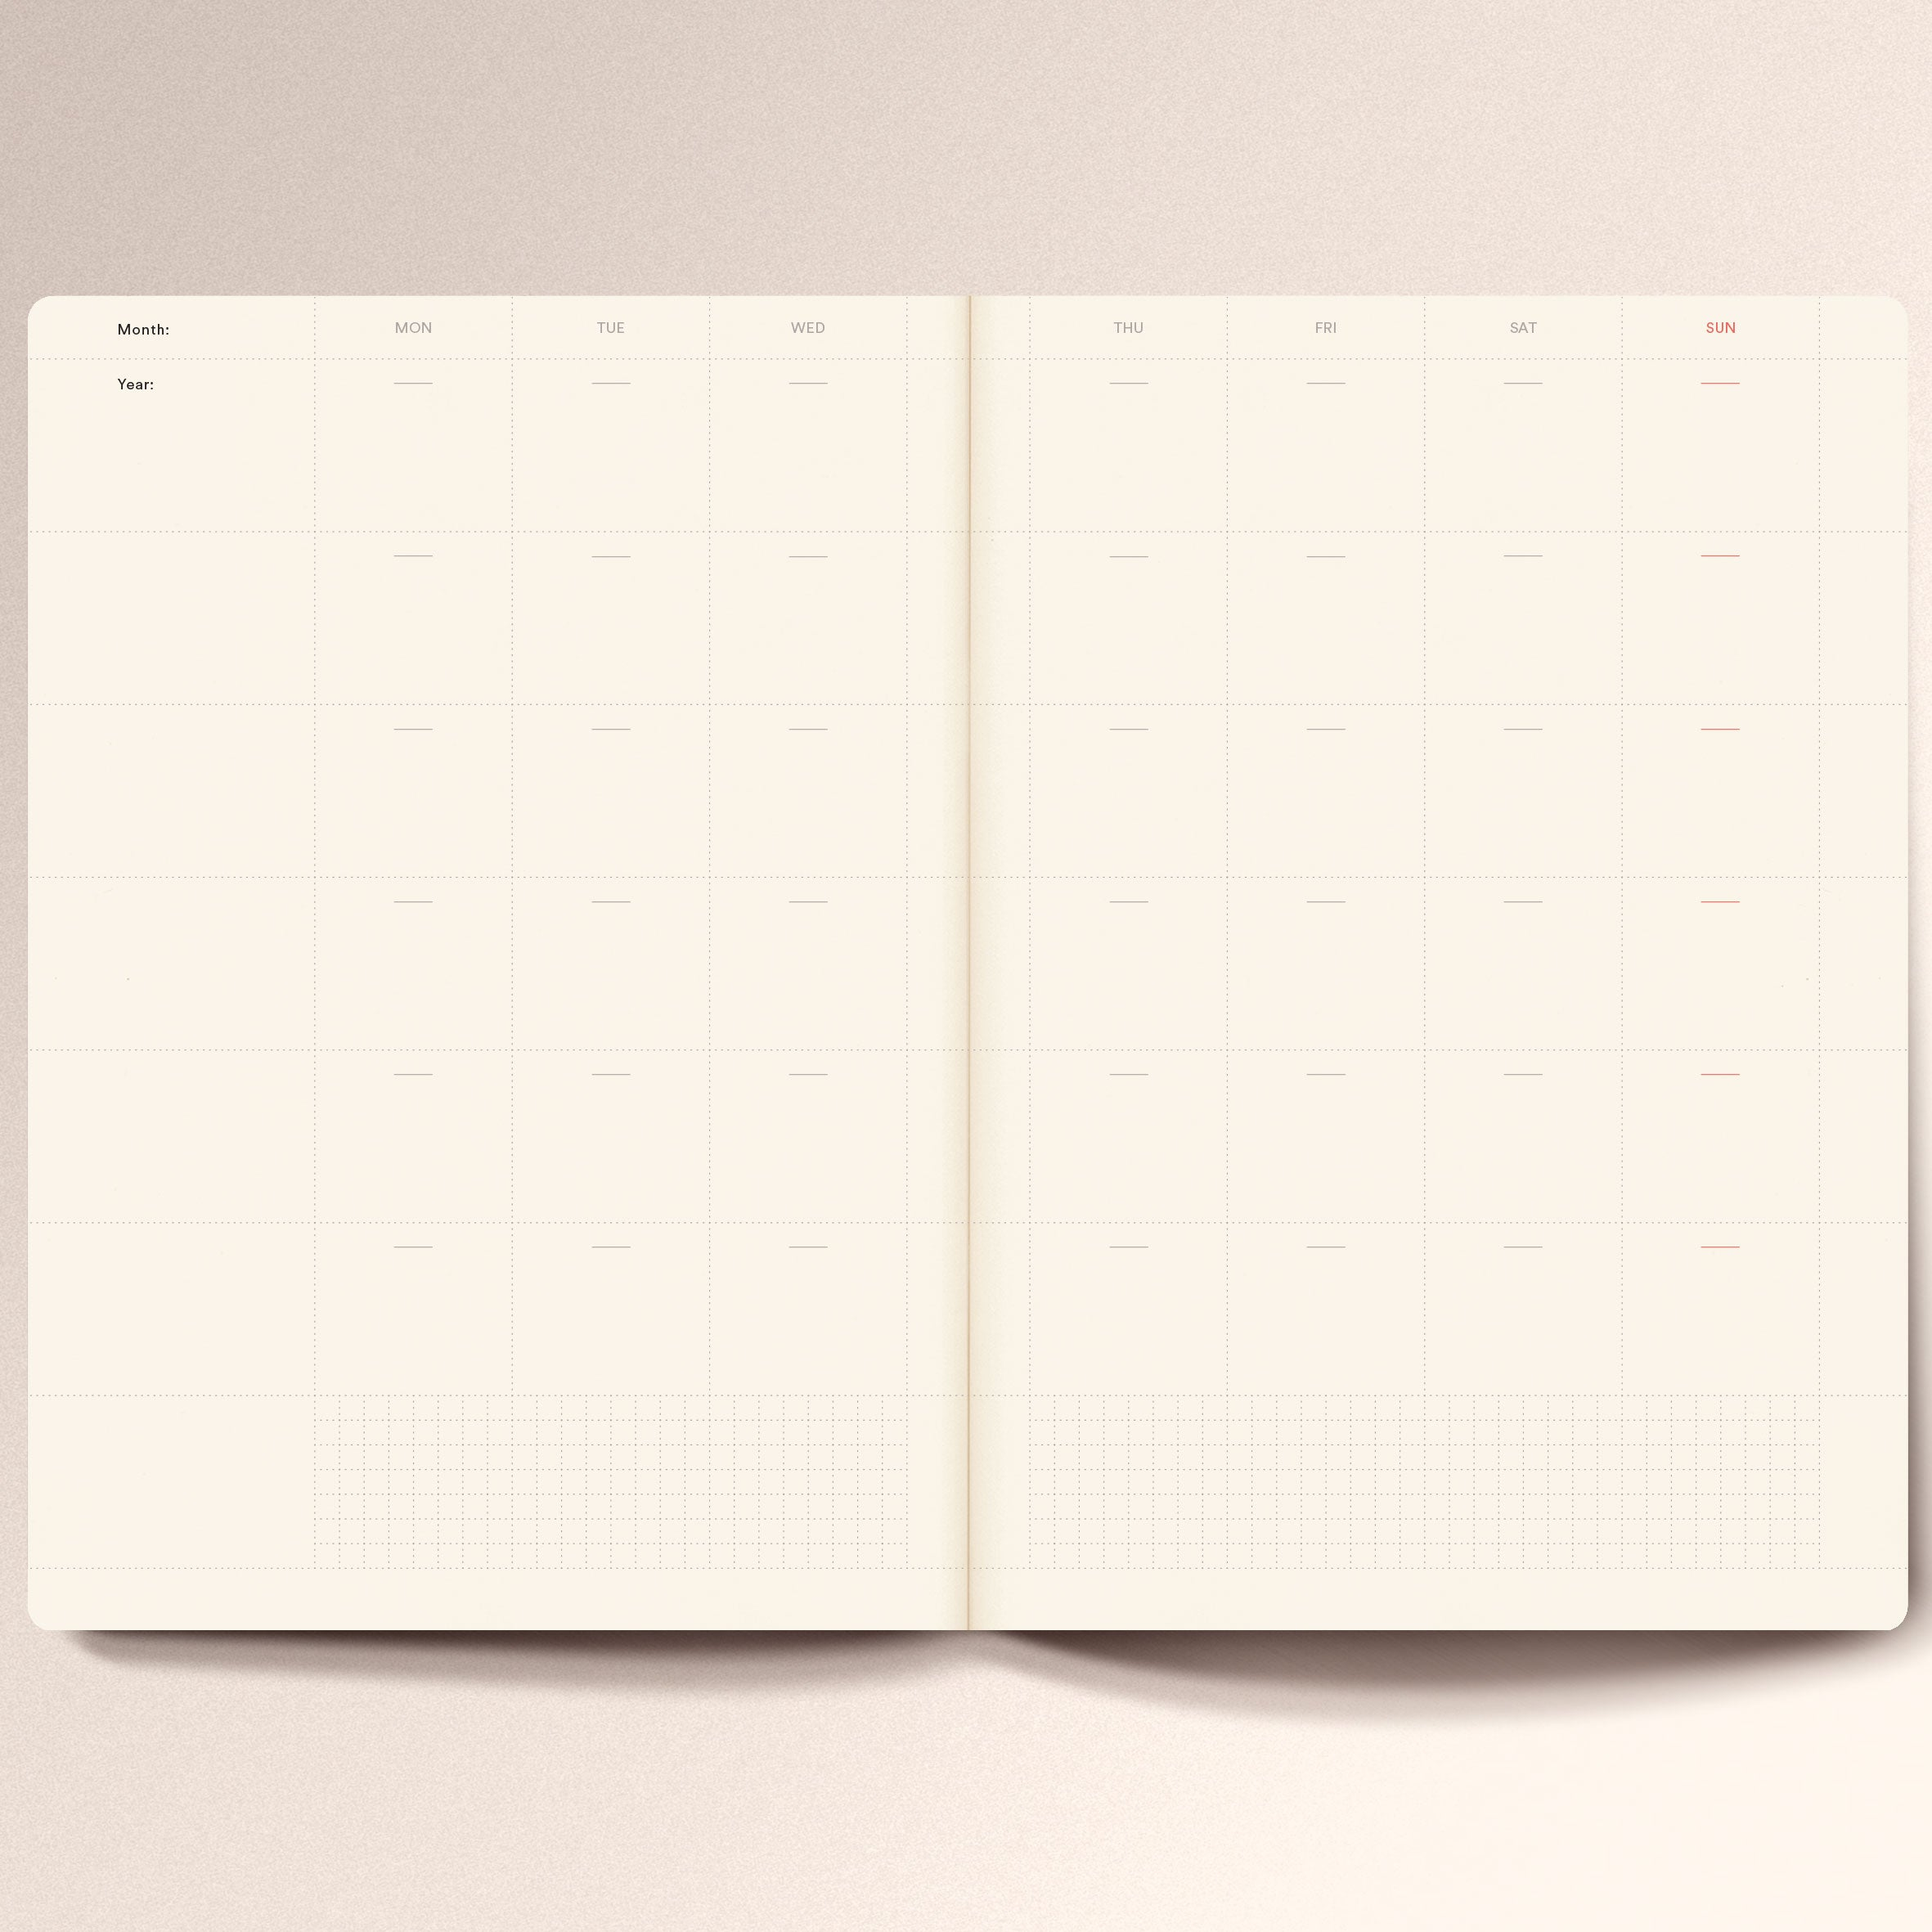 N.402 (Undated Weekly Planner). A5 size